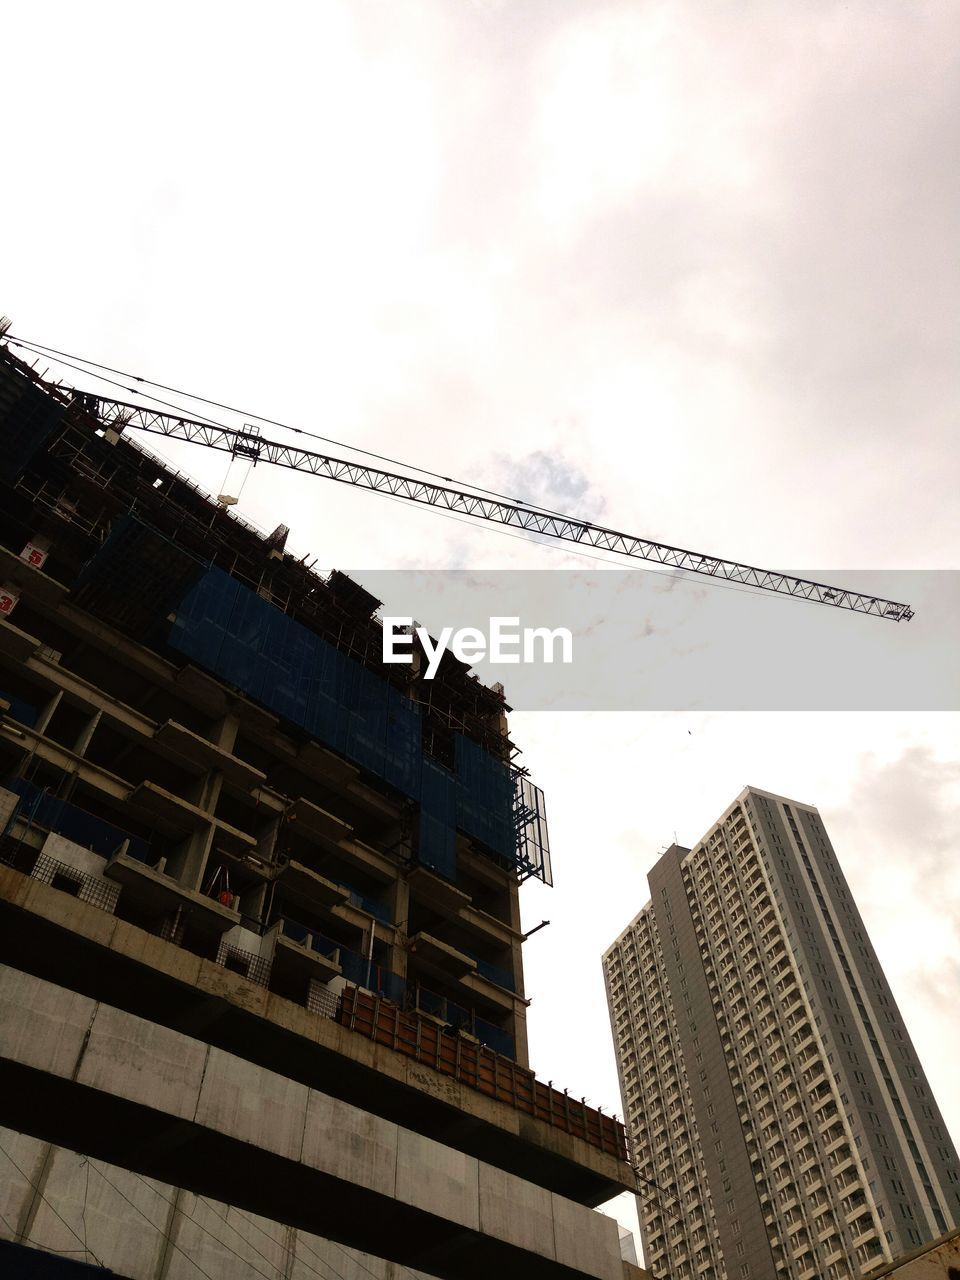 architecture, low angle view, building exterior, built structure, no people, city, skyscraper, day, outdoors, sky, modern